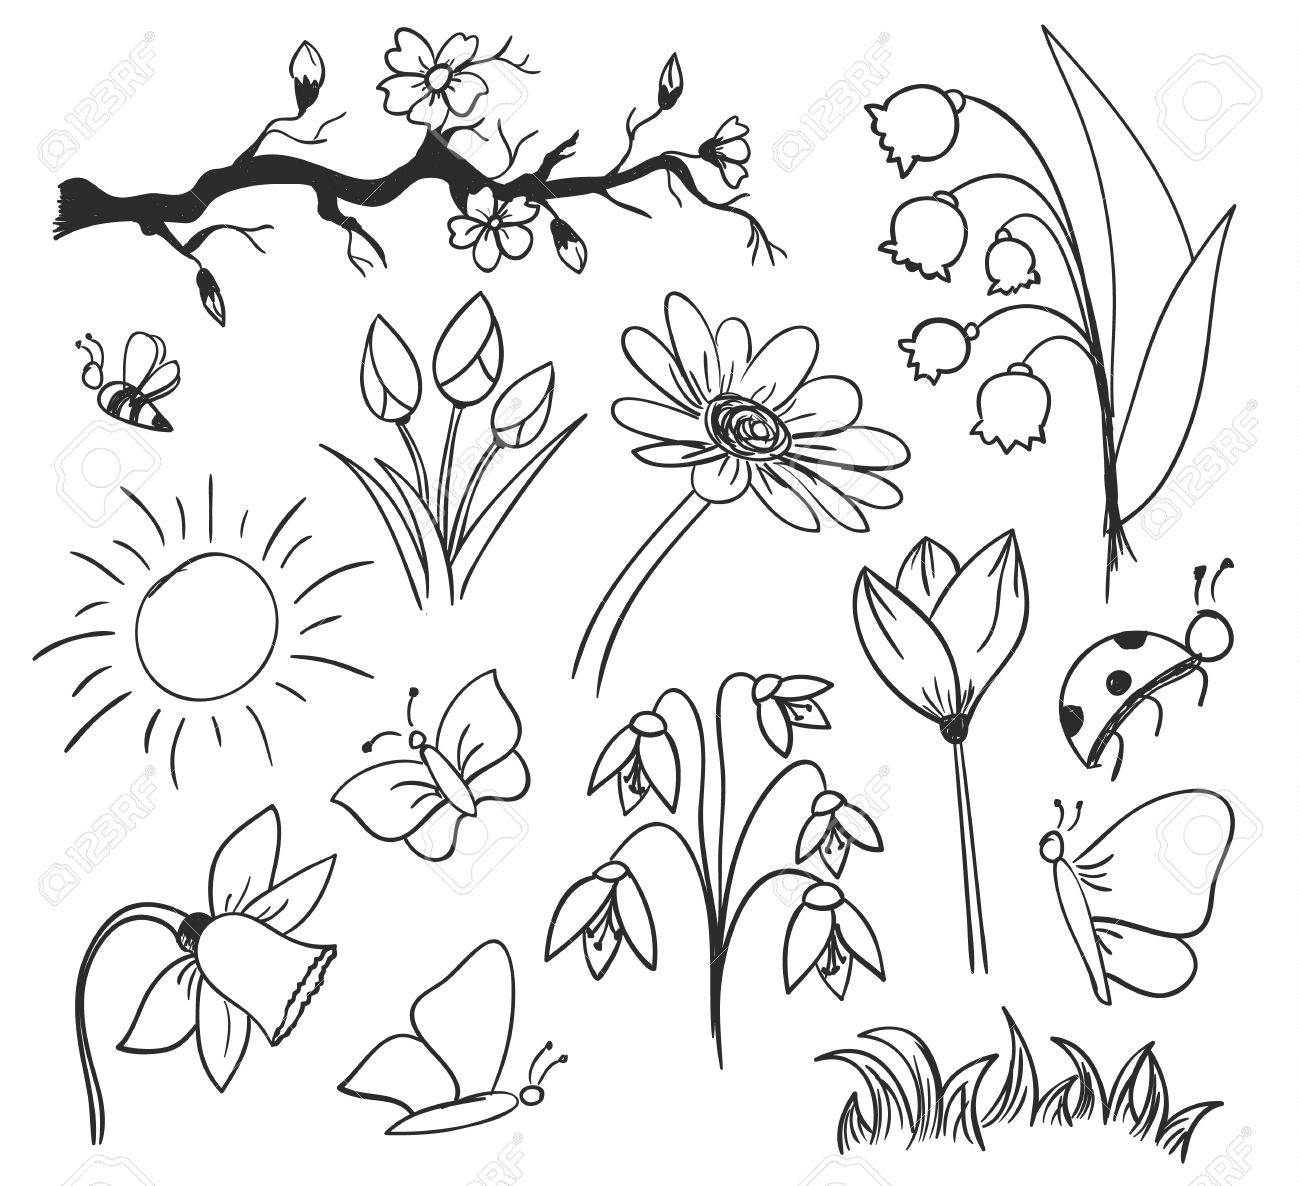 drawing of spring flowers and butterfly royalty free cliparts